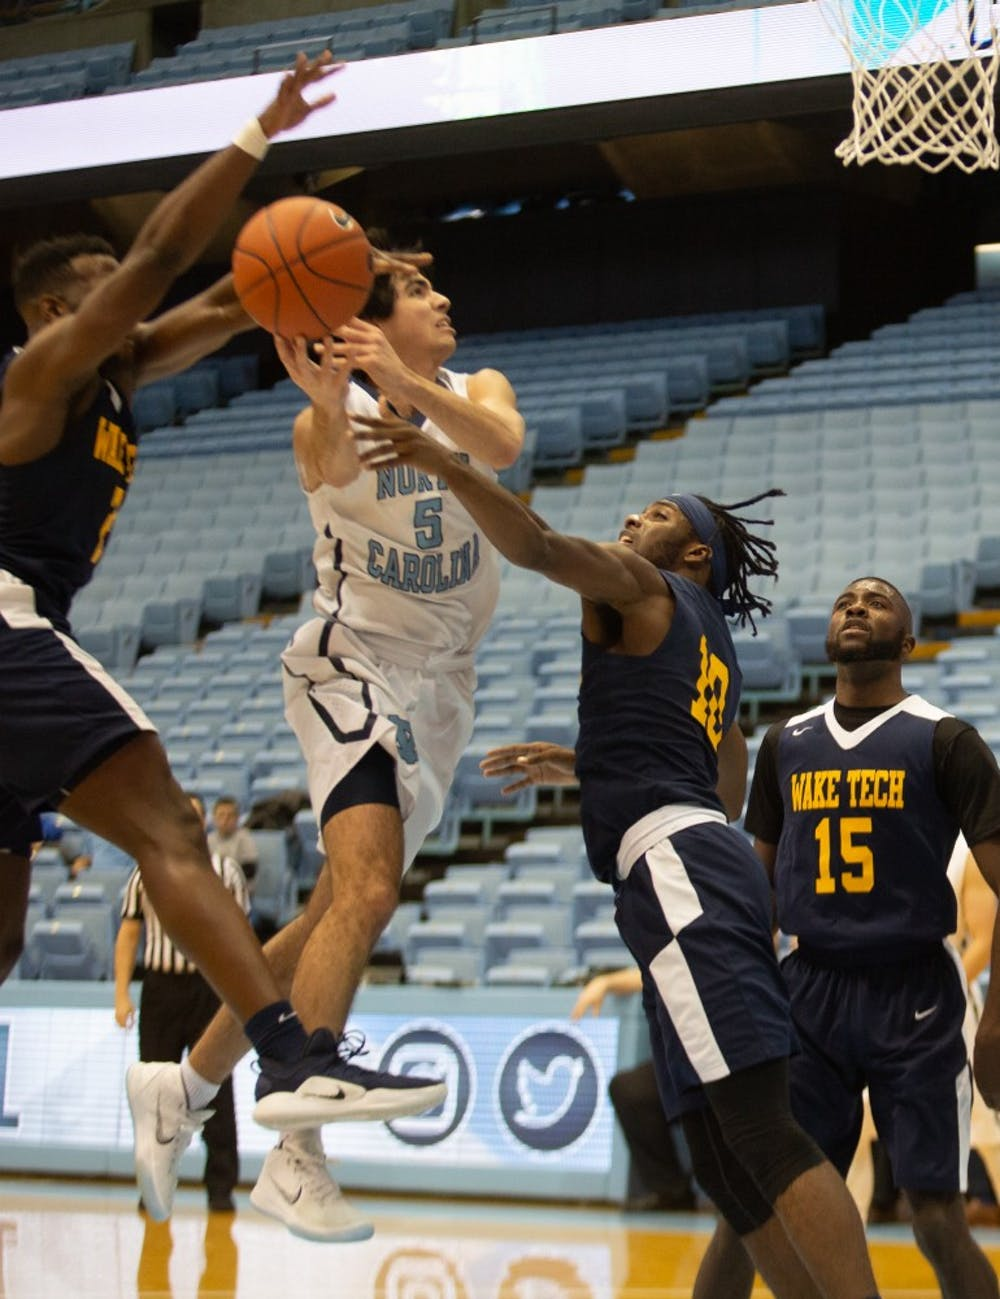 UNC JV men's basketball fatigued in 88-74 loss to Massanutten Military Academy